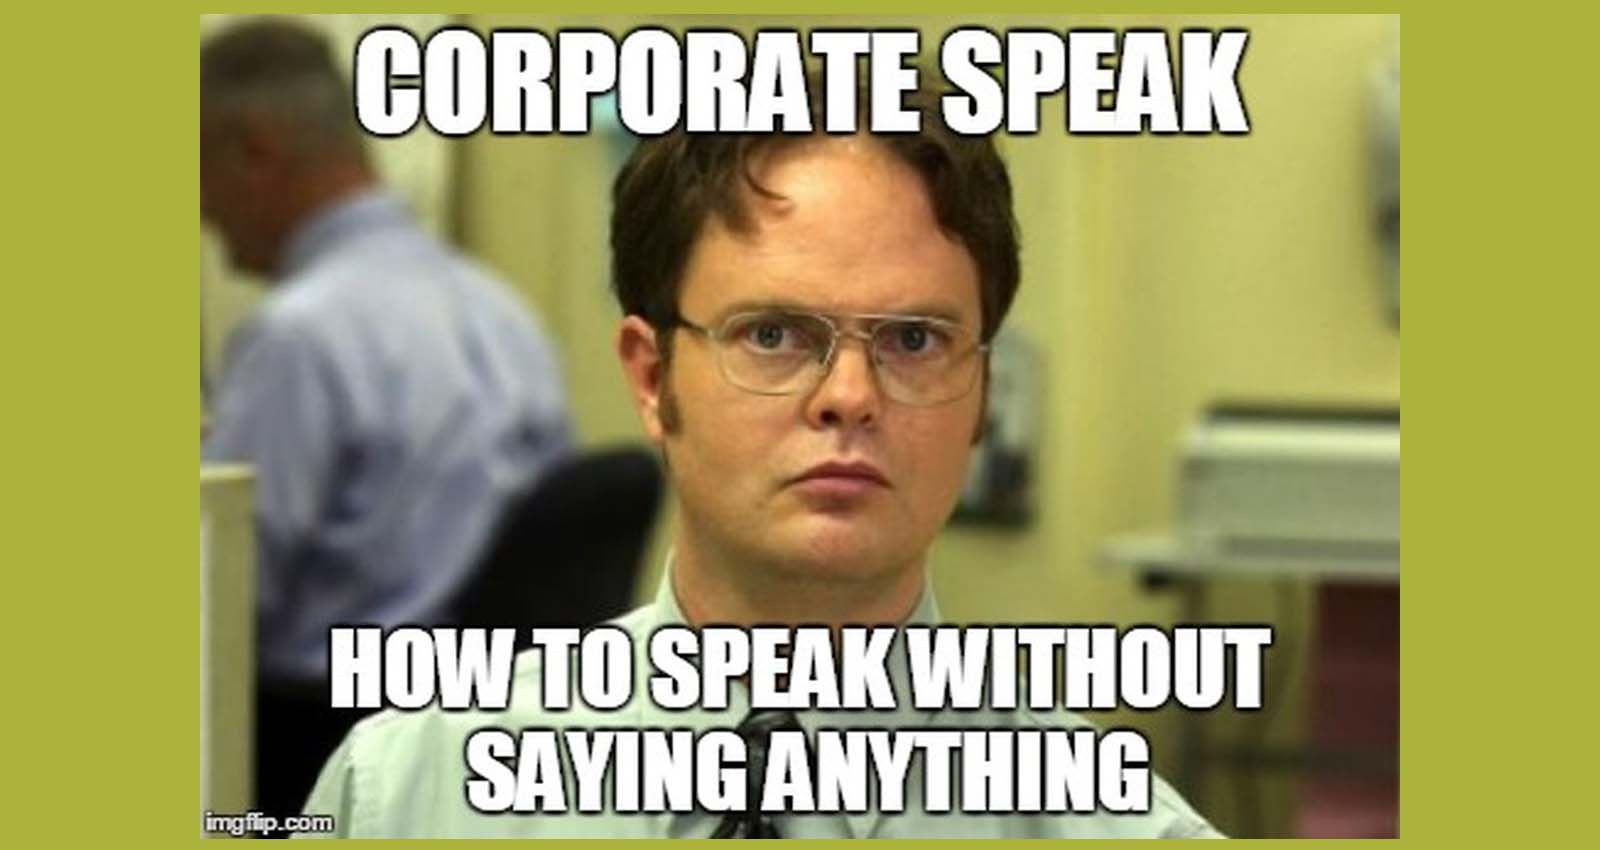 Corporate Speak: How to Speak Without Really Saying Anything